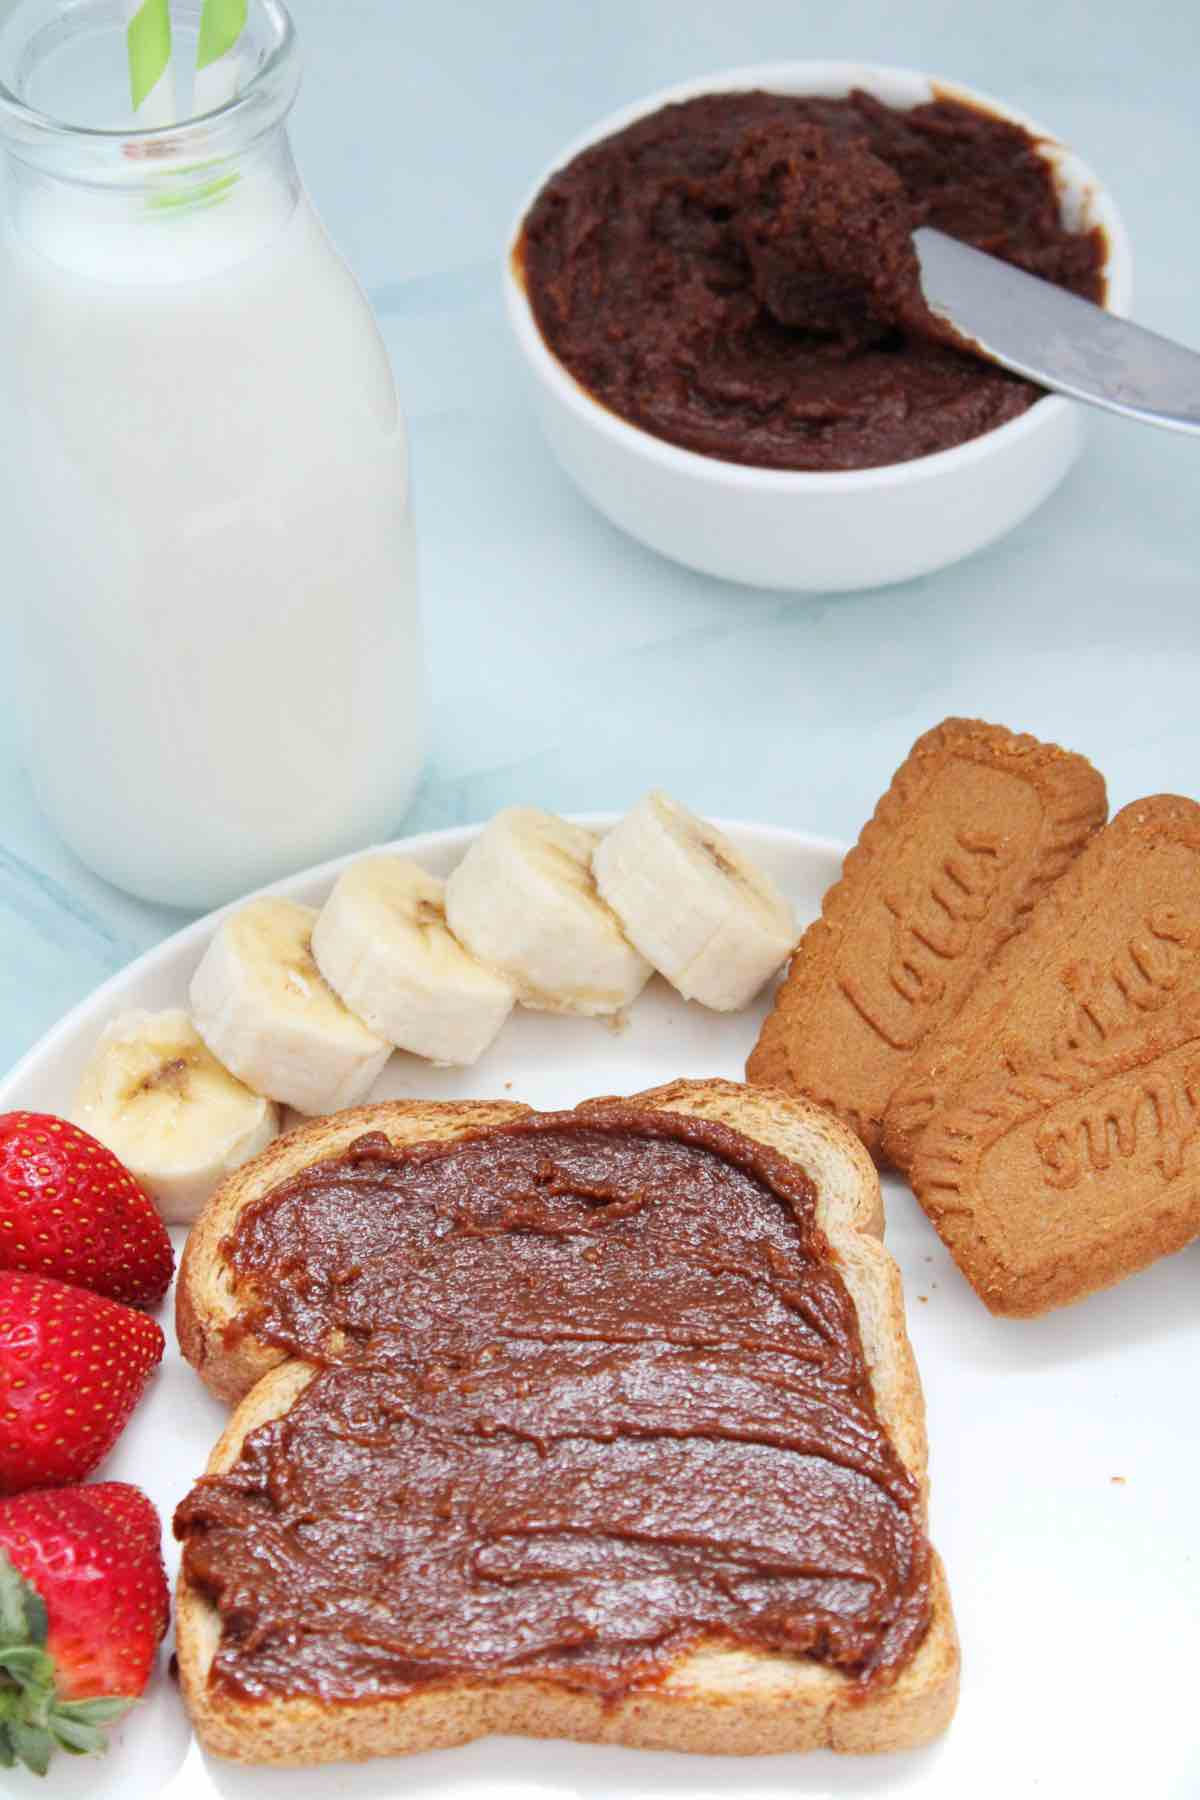 Serve this Biscoff cookie spread with toast, fresh fruits or anything you'd like.